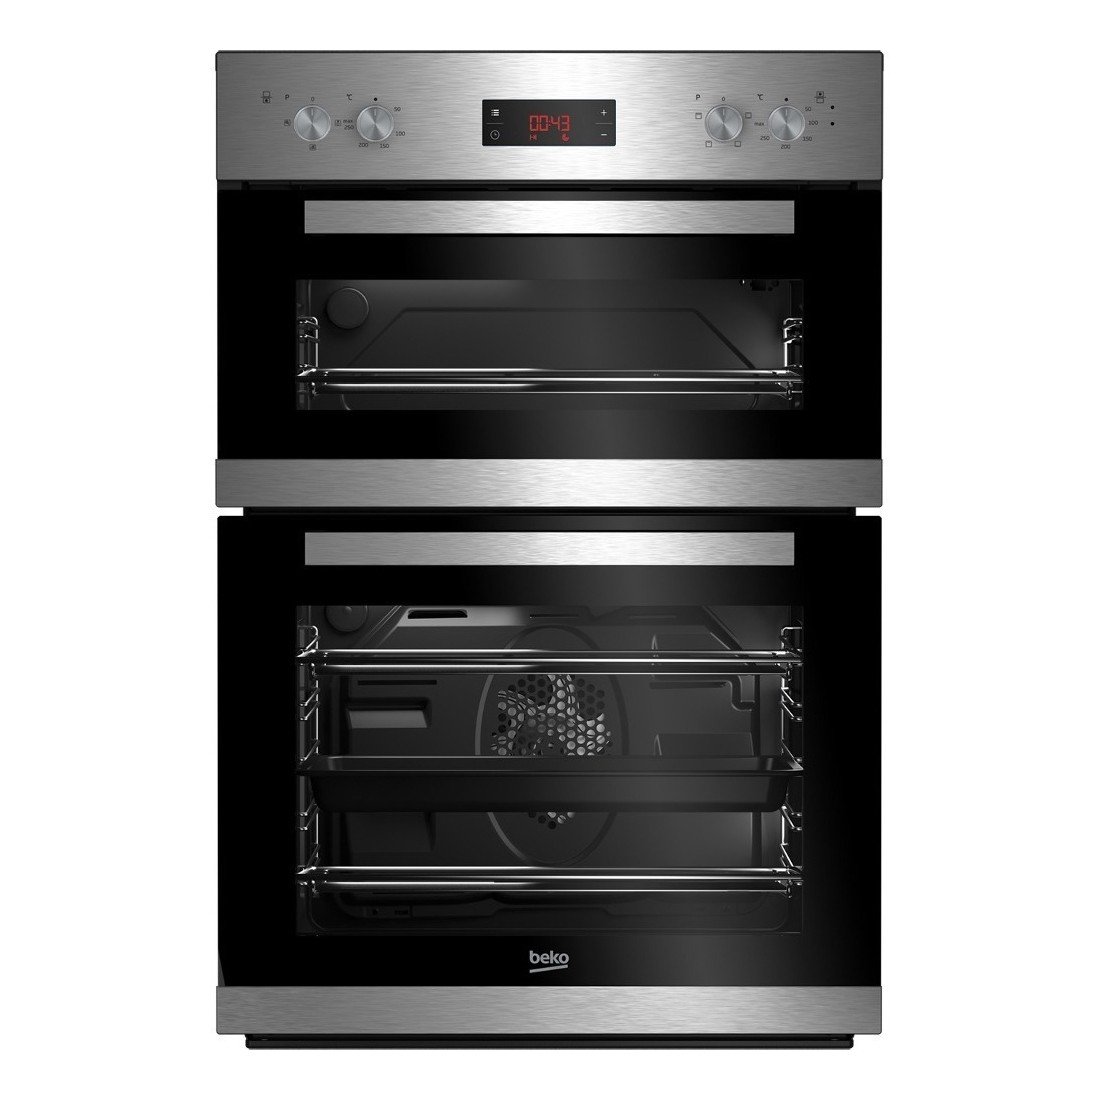 Beko CDF22309X Built In Electric Double Oven - Stainless Steel - A/A Rated